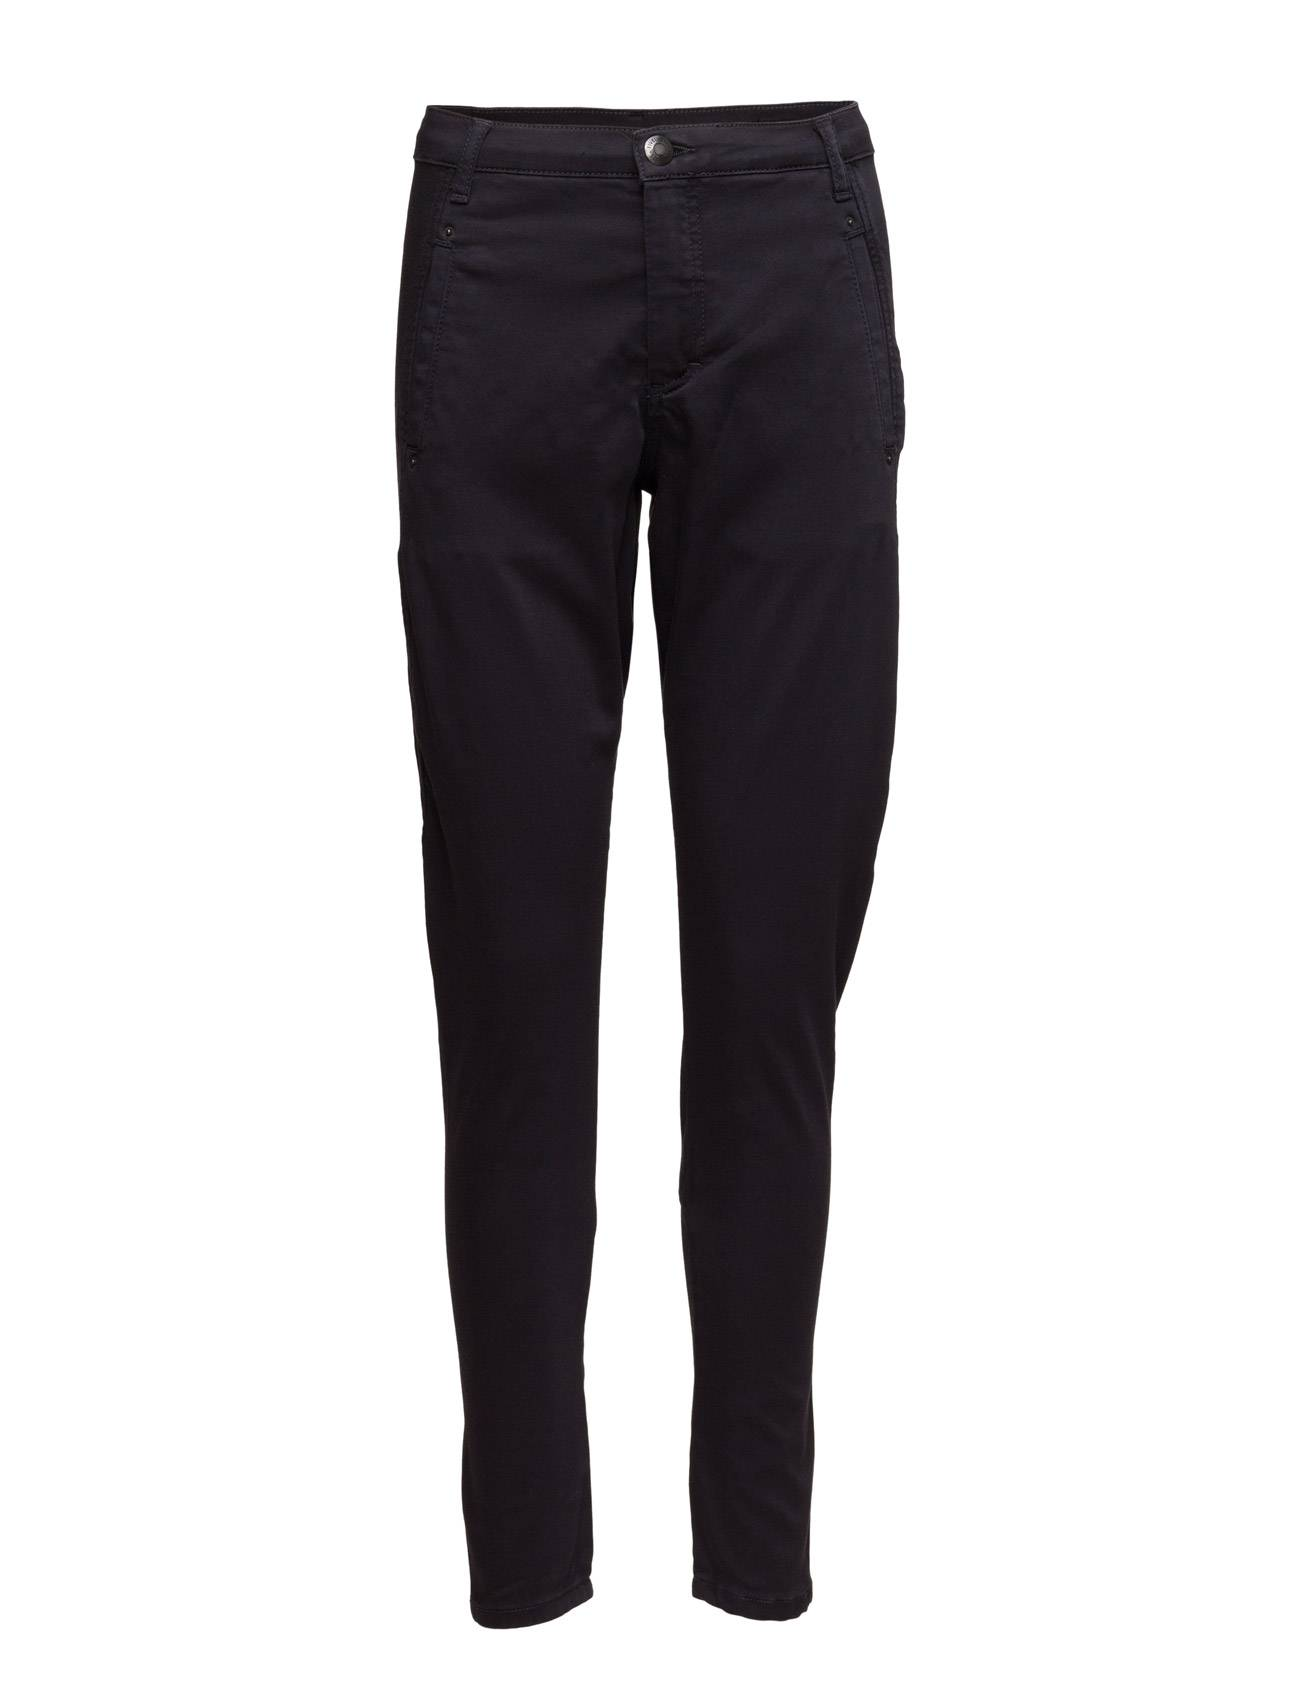 FIVEUNITS Jolie 606 Smoky Nights, Jeans